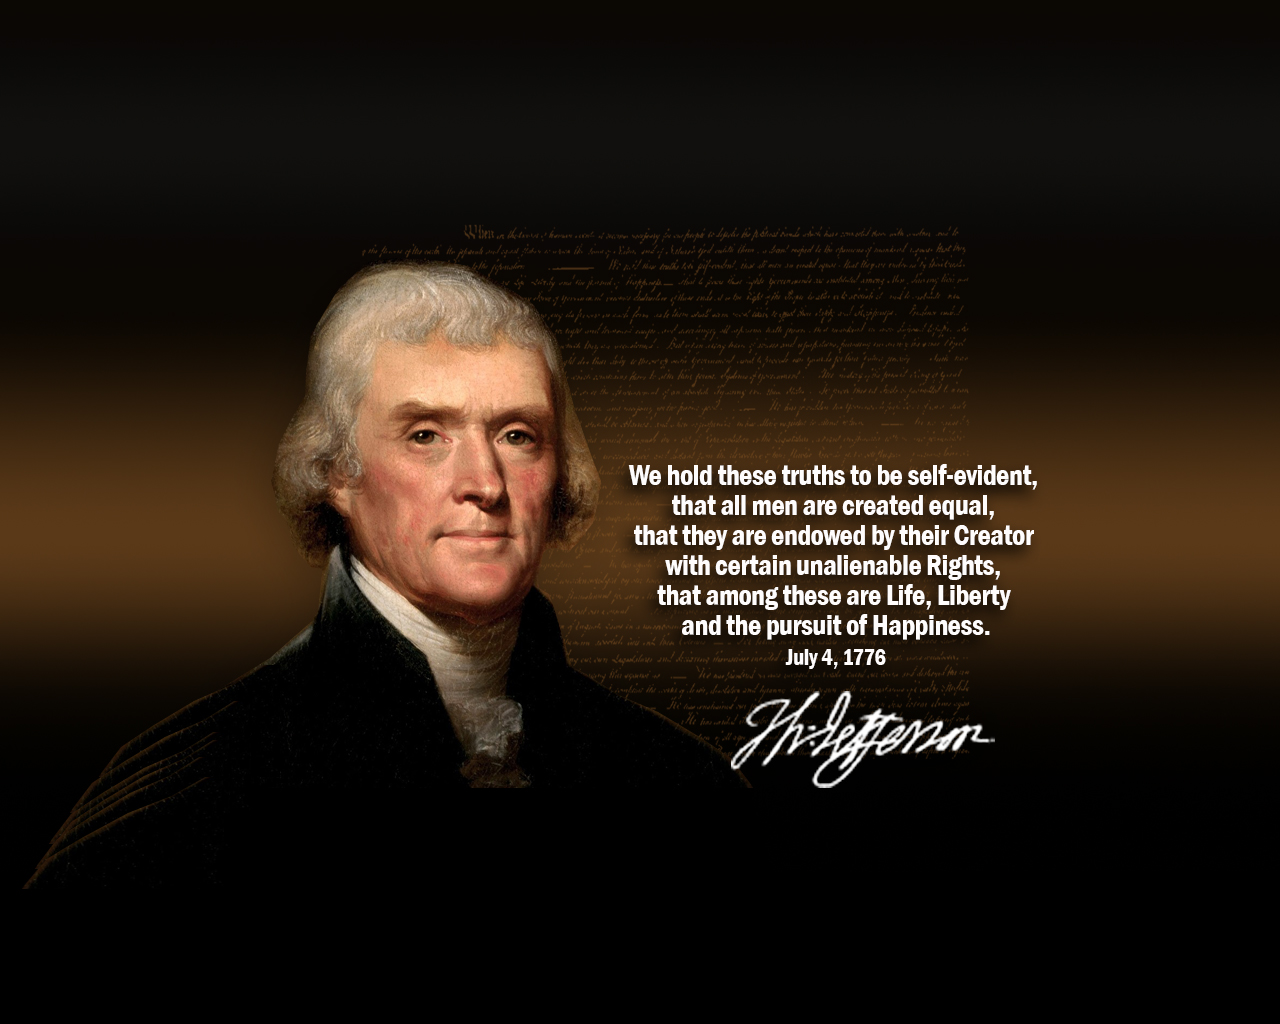 Thomas jefferson declaration quotes quotesgram Thomas jefferson quotes